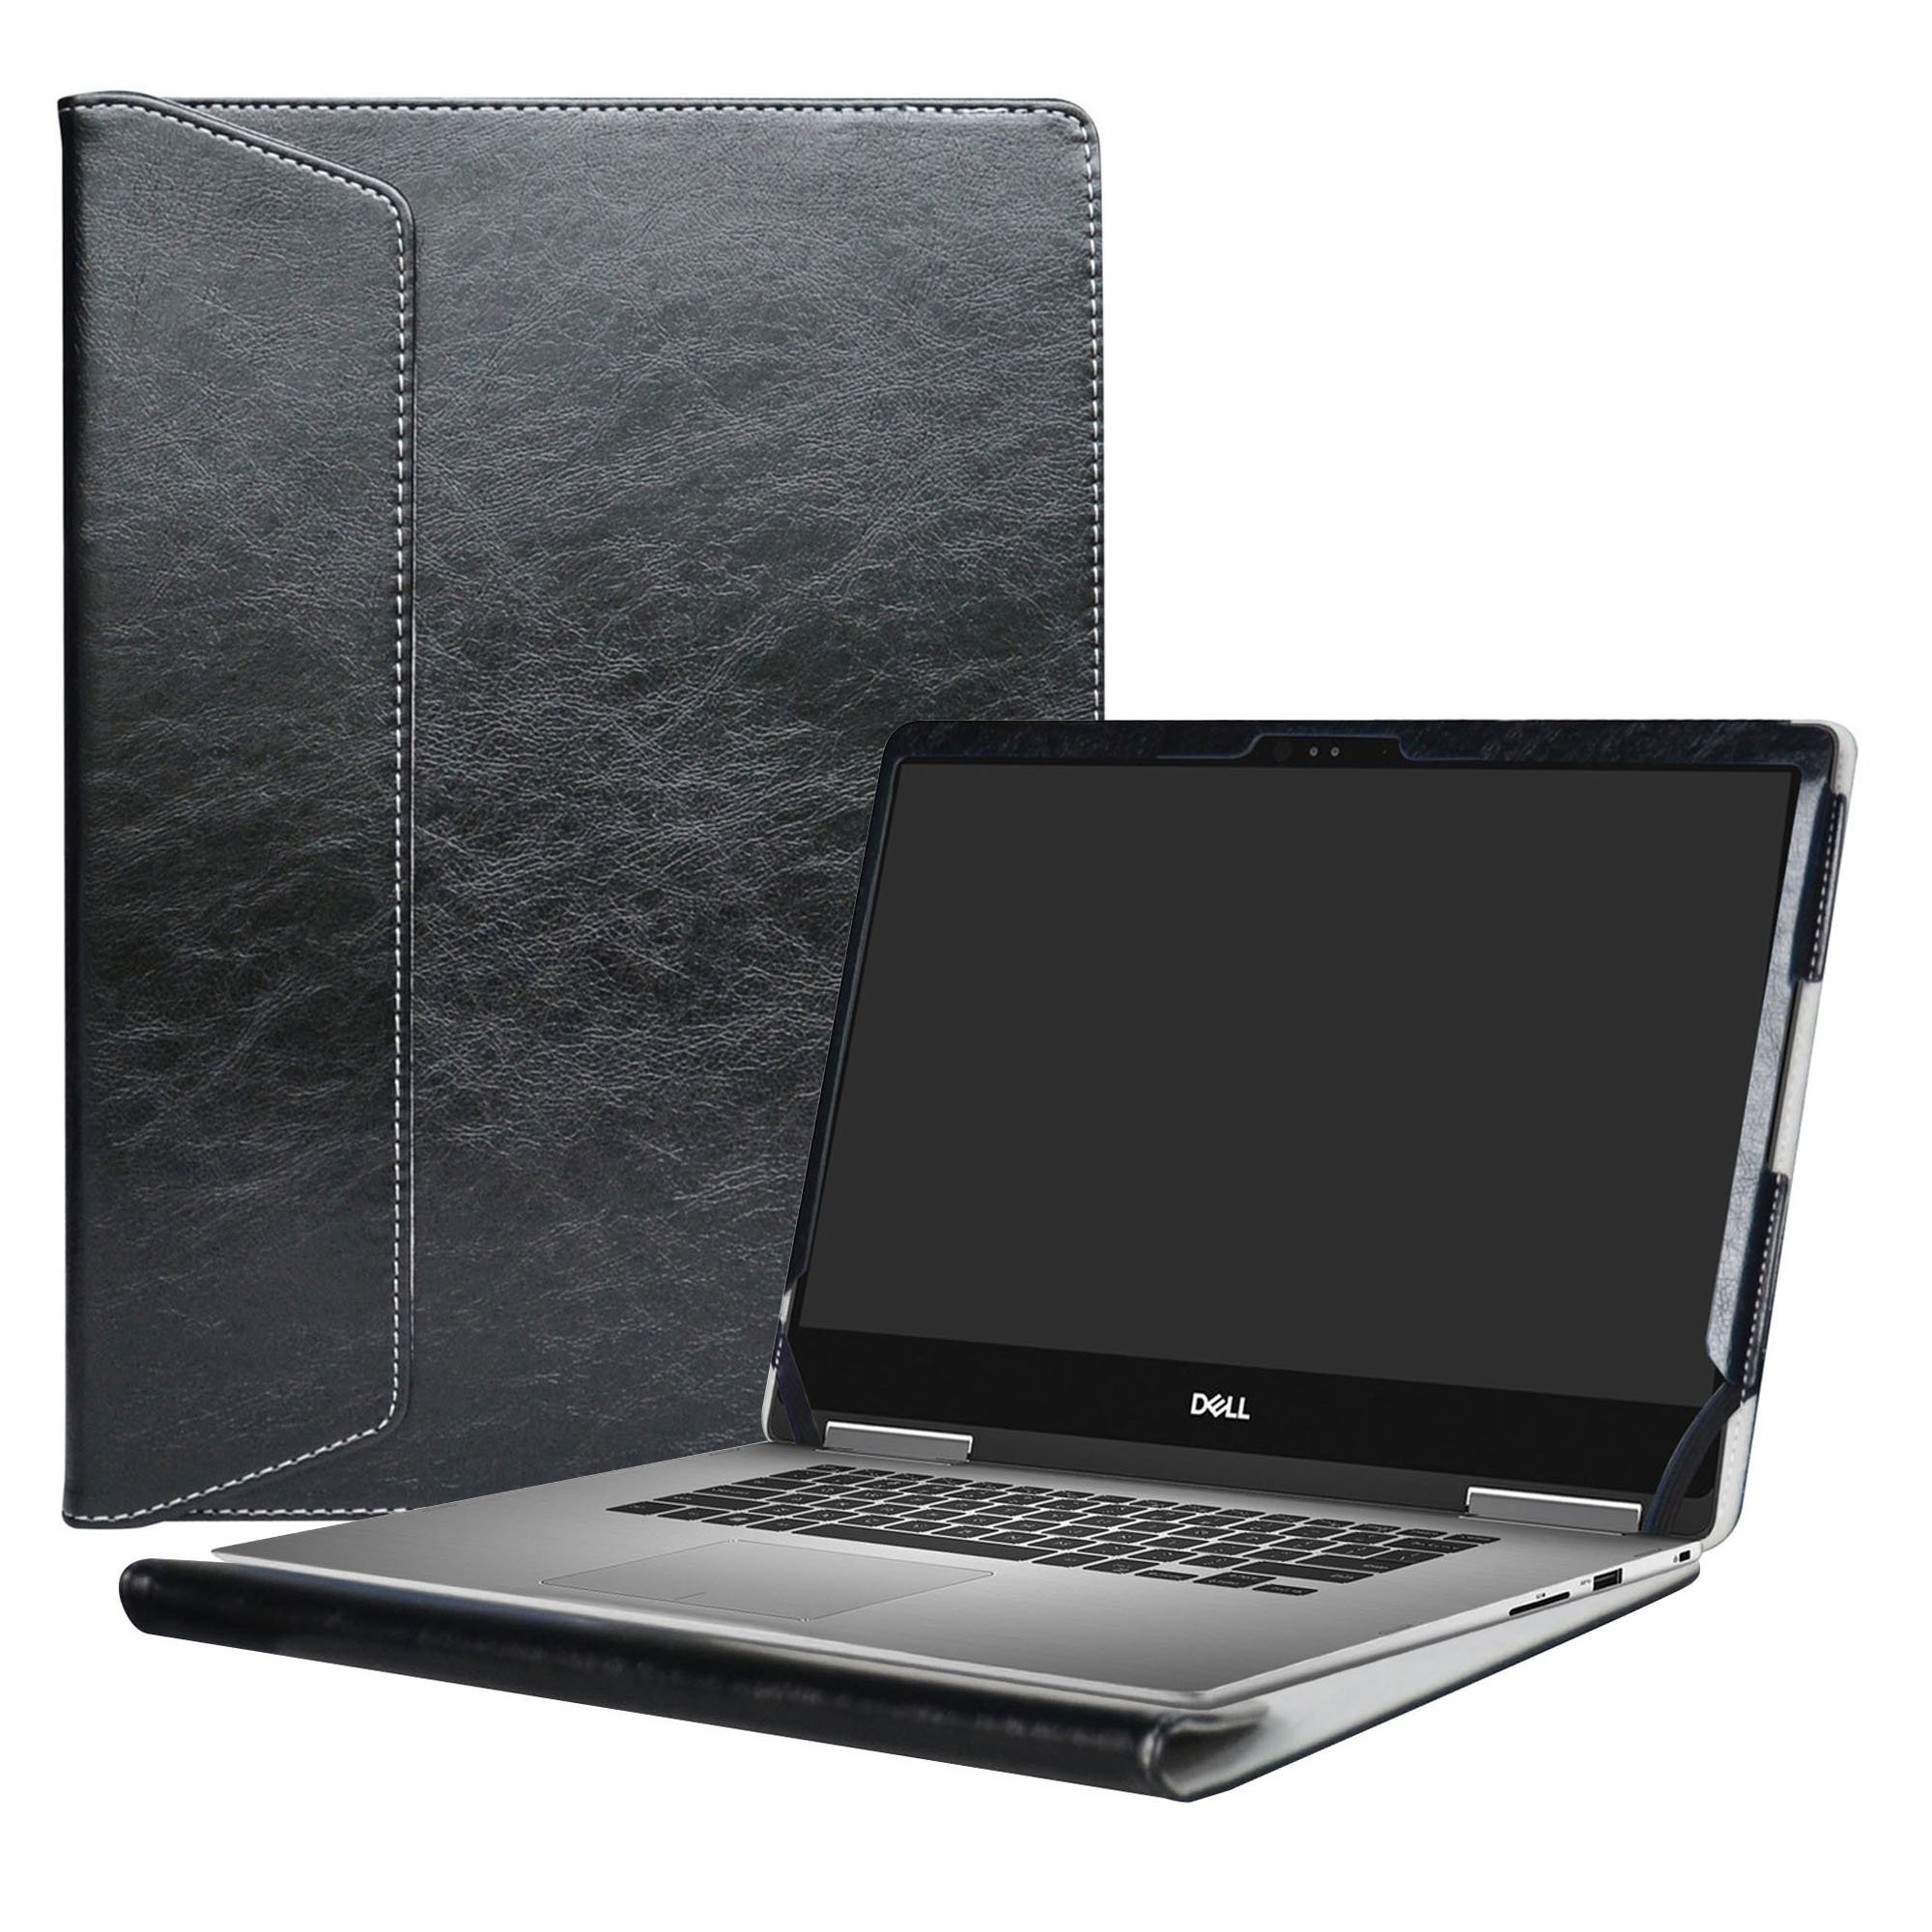 CaseBuy Keyboard Cover Compatible with Dell Latitude 3300 3301 13.3 inch Laptop Dell Latitude 7000 7300 13.3 Keyboard Protective Skin Without Pointing Black Dell Latitude 5300 13.3 Laptop